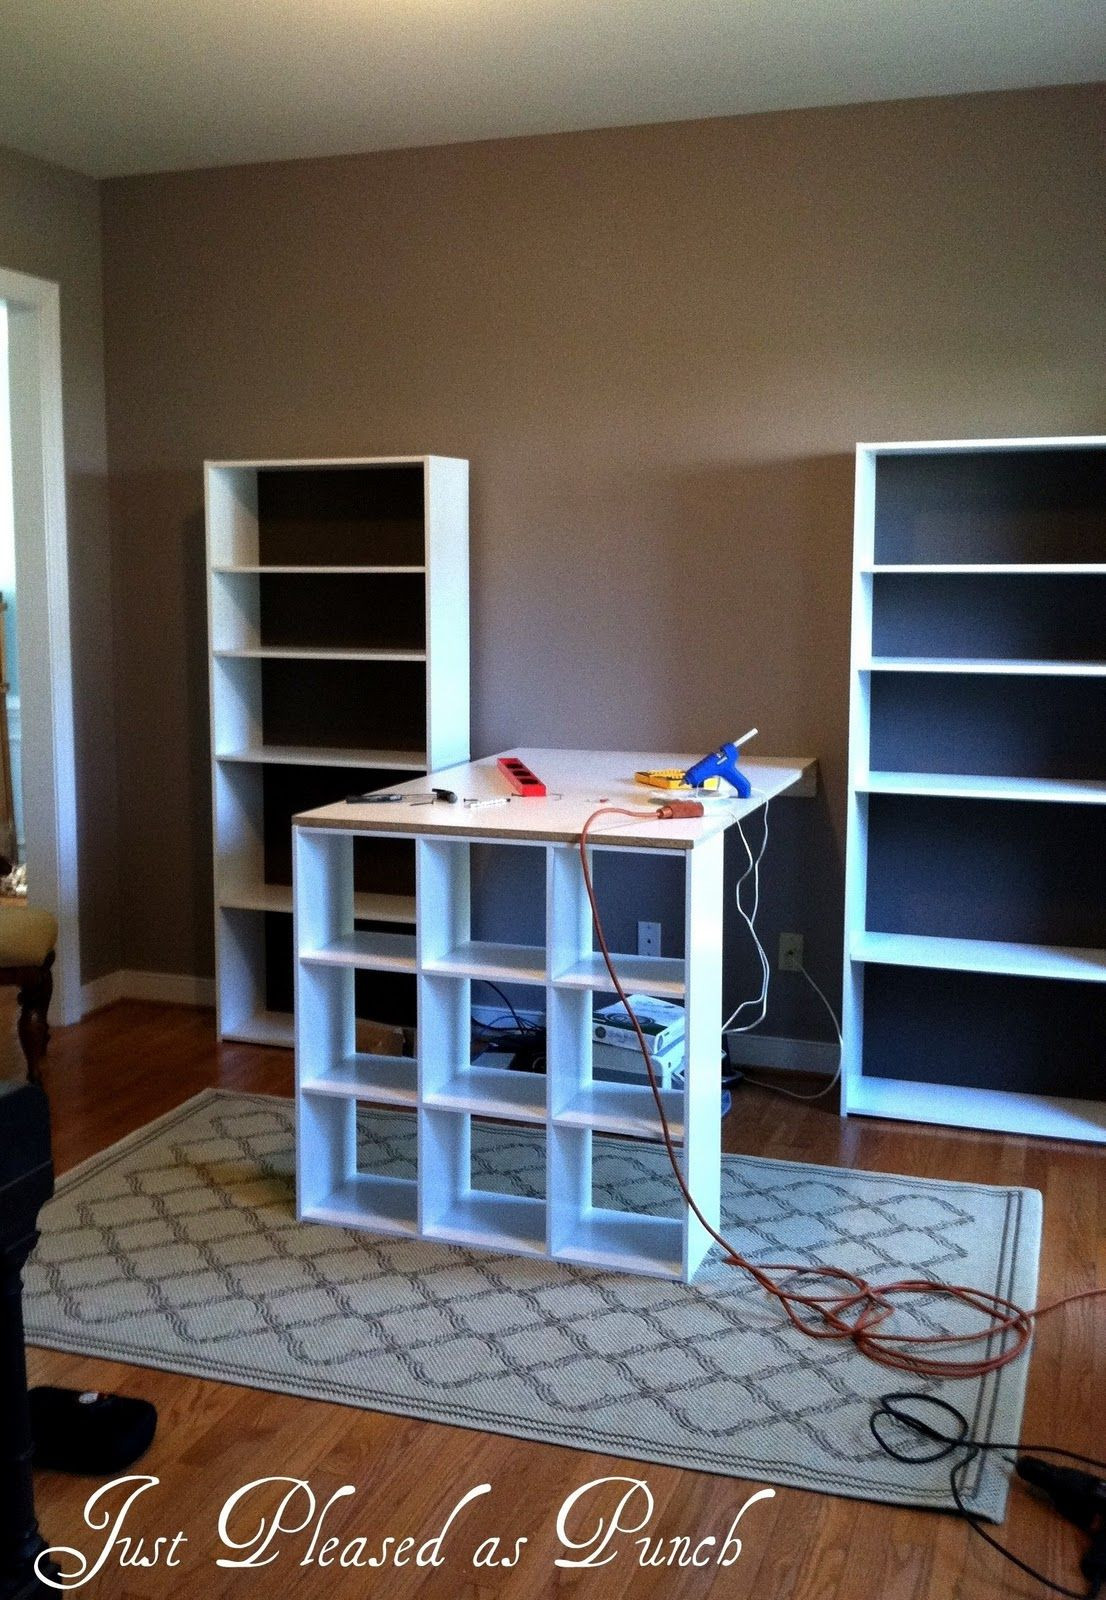 dj hardwood floors of craft room ideas on a budget just pleased as punch2 wanna make with craft room ideas on a budget just pleased as punch2